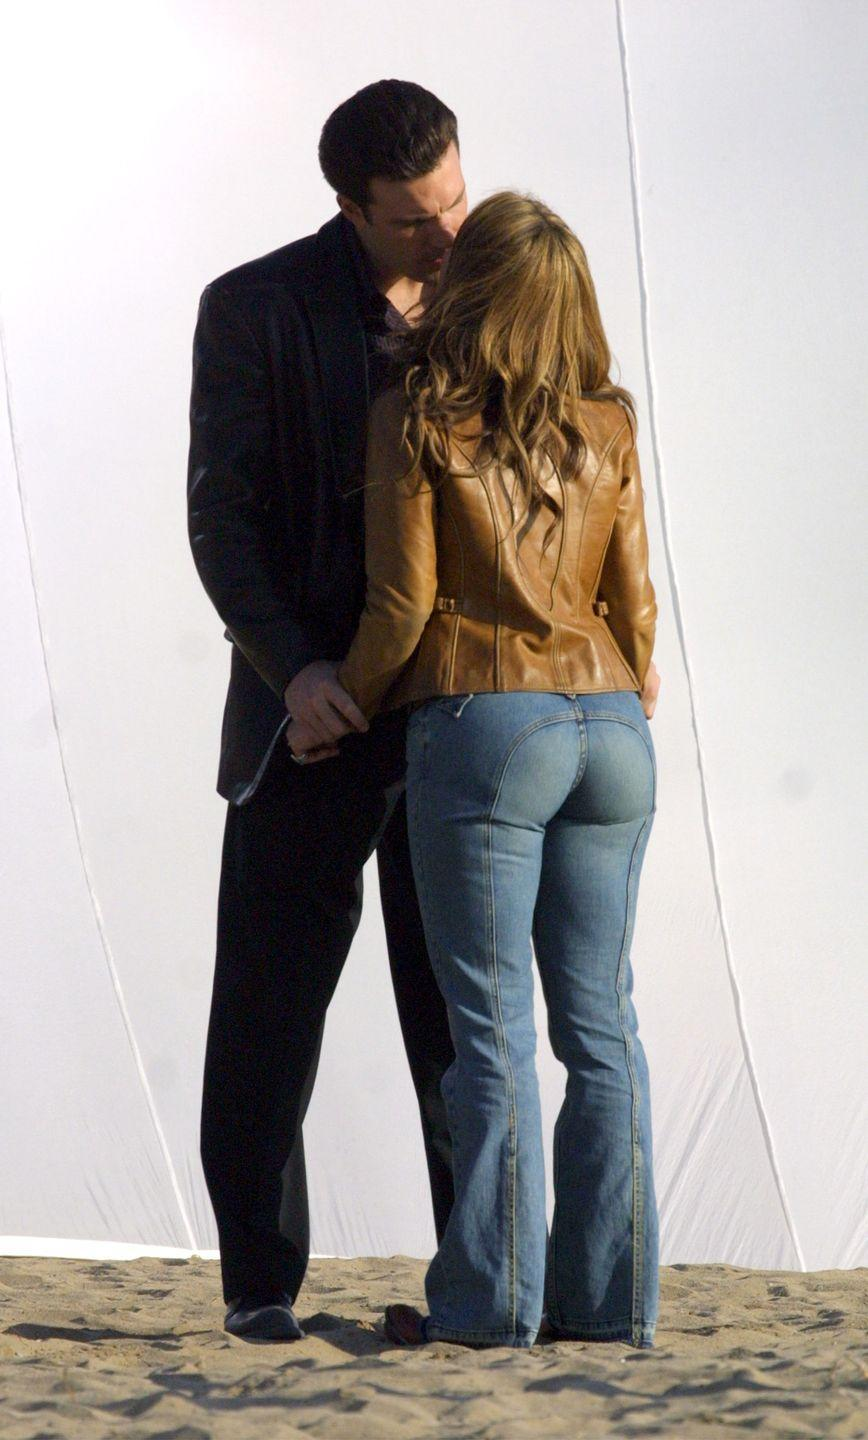 <p>With the semi-circle seams at the butt, Jennifer Lopez's jeans remind us of those '70s Levi's that were no-back-pockets-needed.</p>